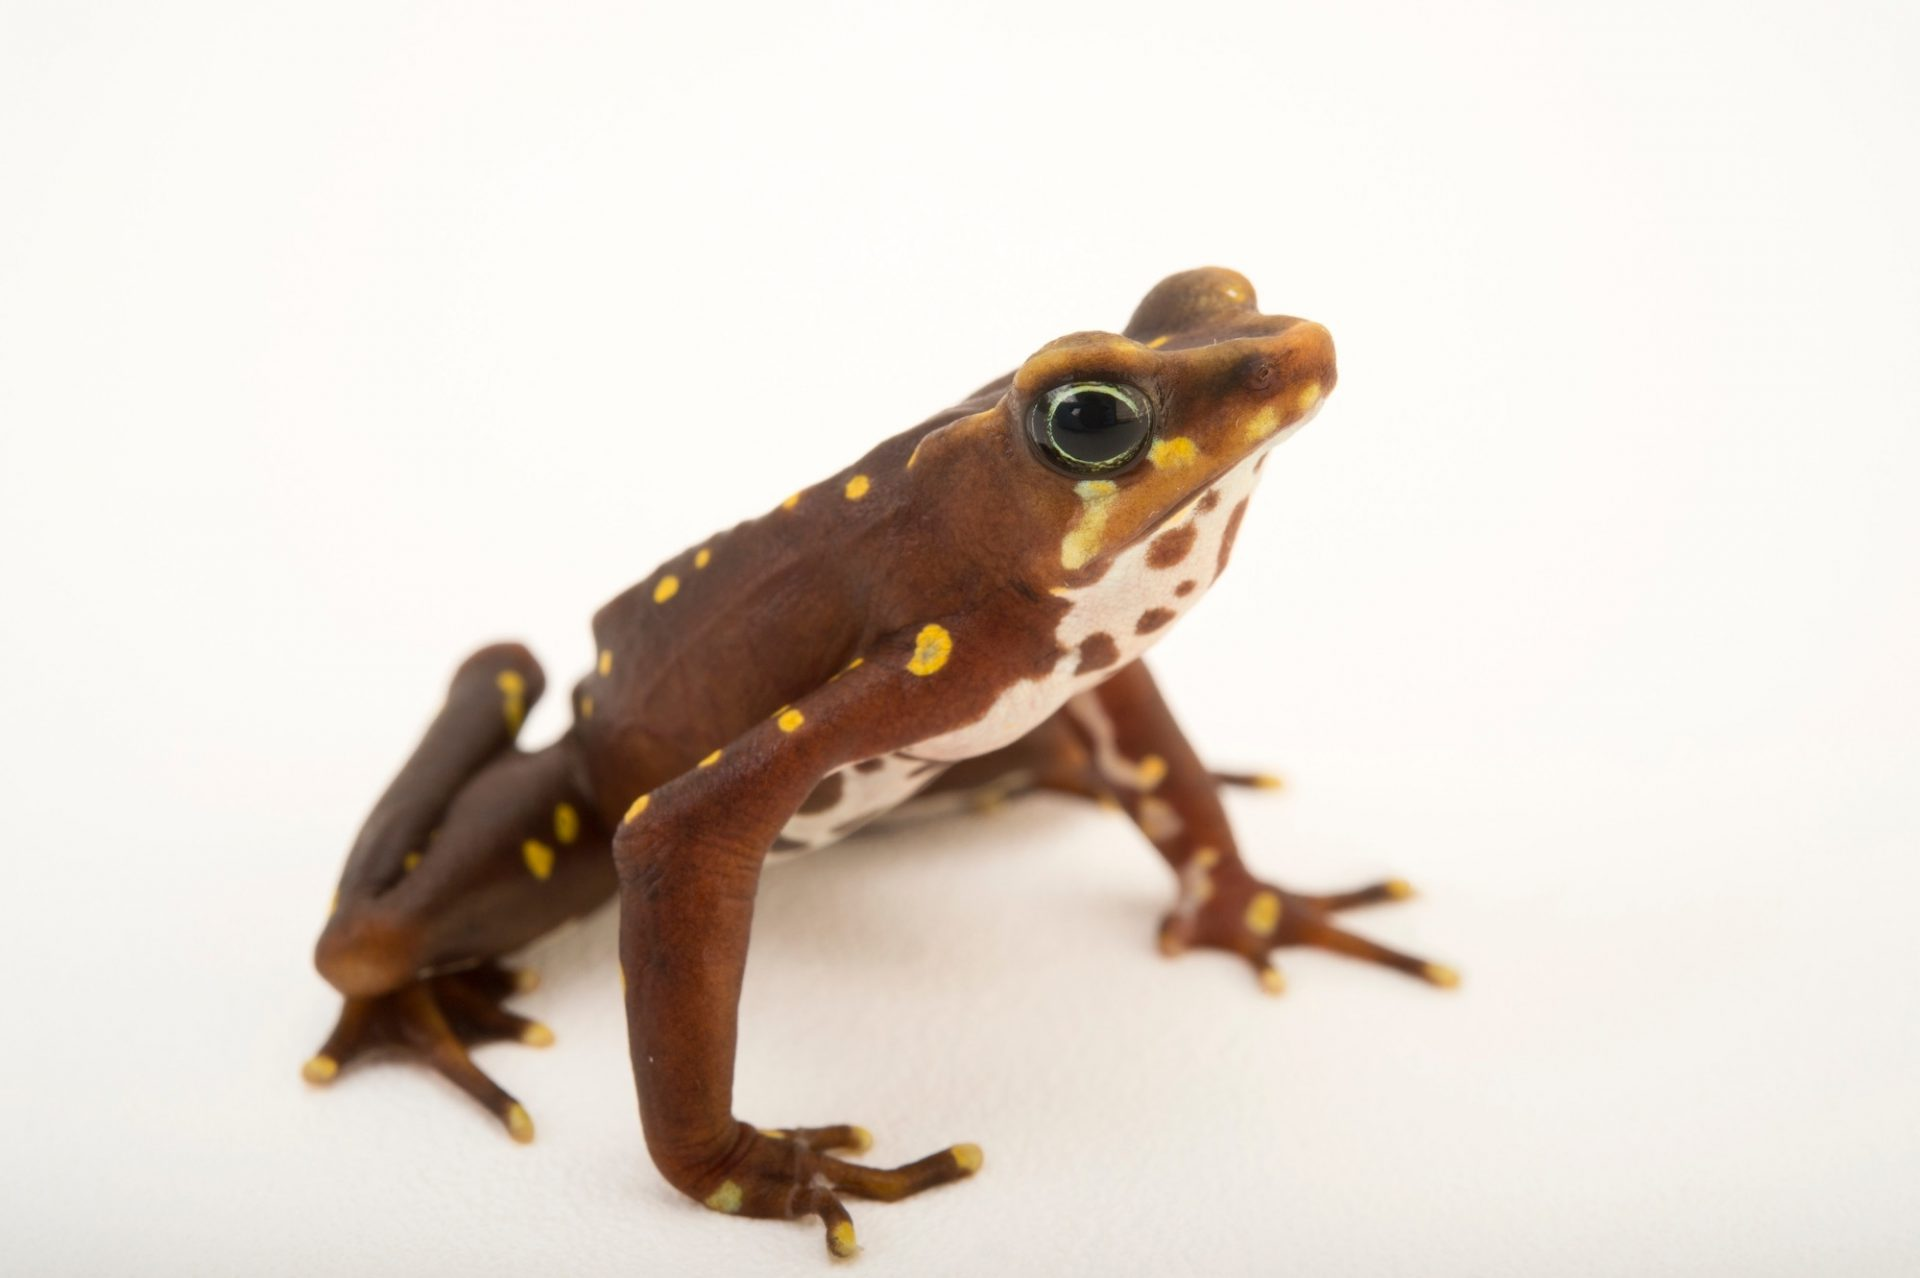 Picture of the critically endangered, Pirre harlequin frog (Atelopus glyphus) at the Panama Amphibian Rescue and Conservation Project.